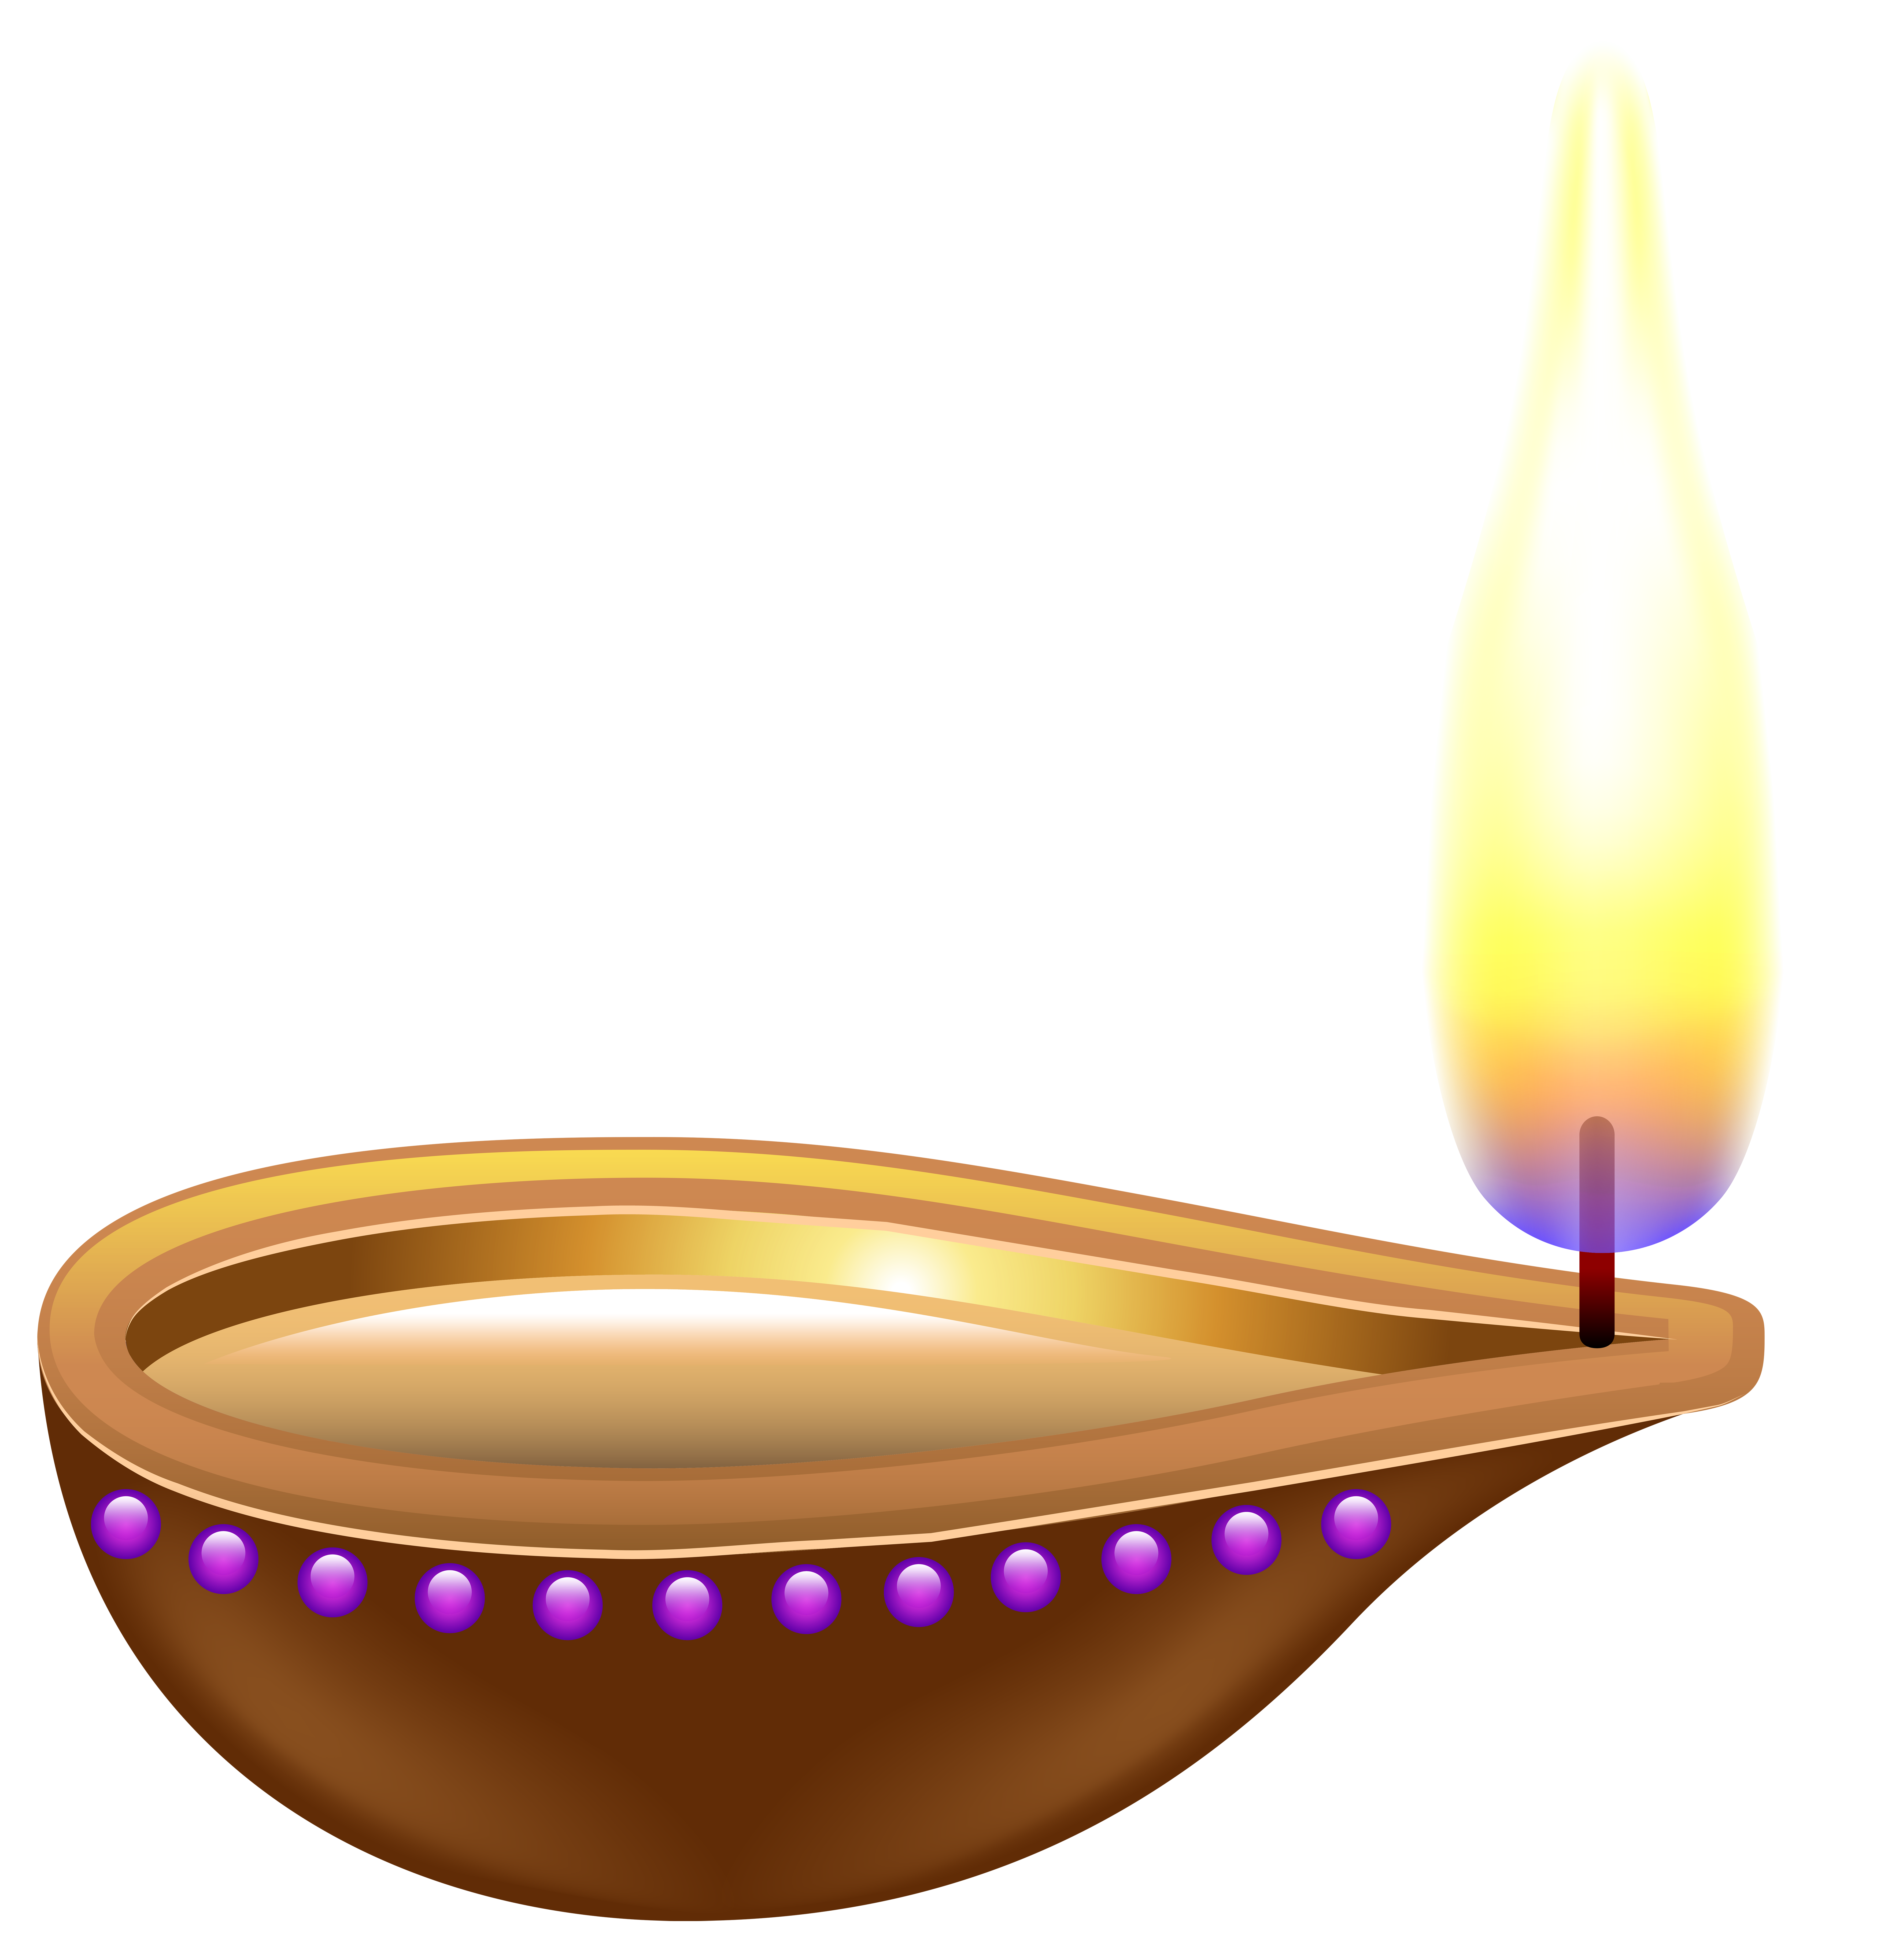 Explosion clipart diwali bomb. India candle transparent png